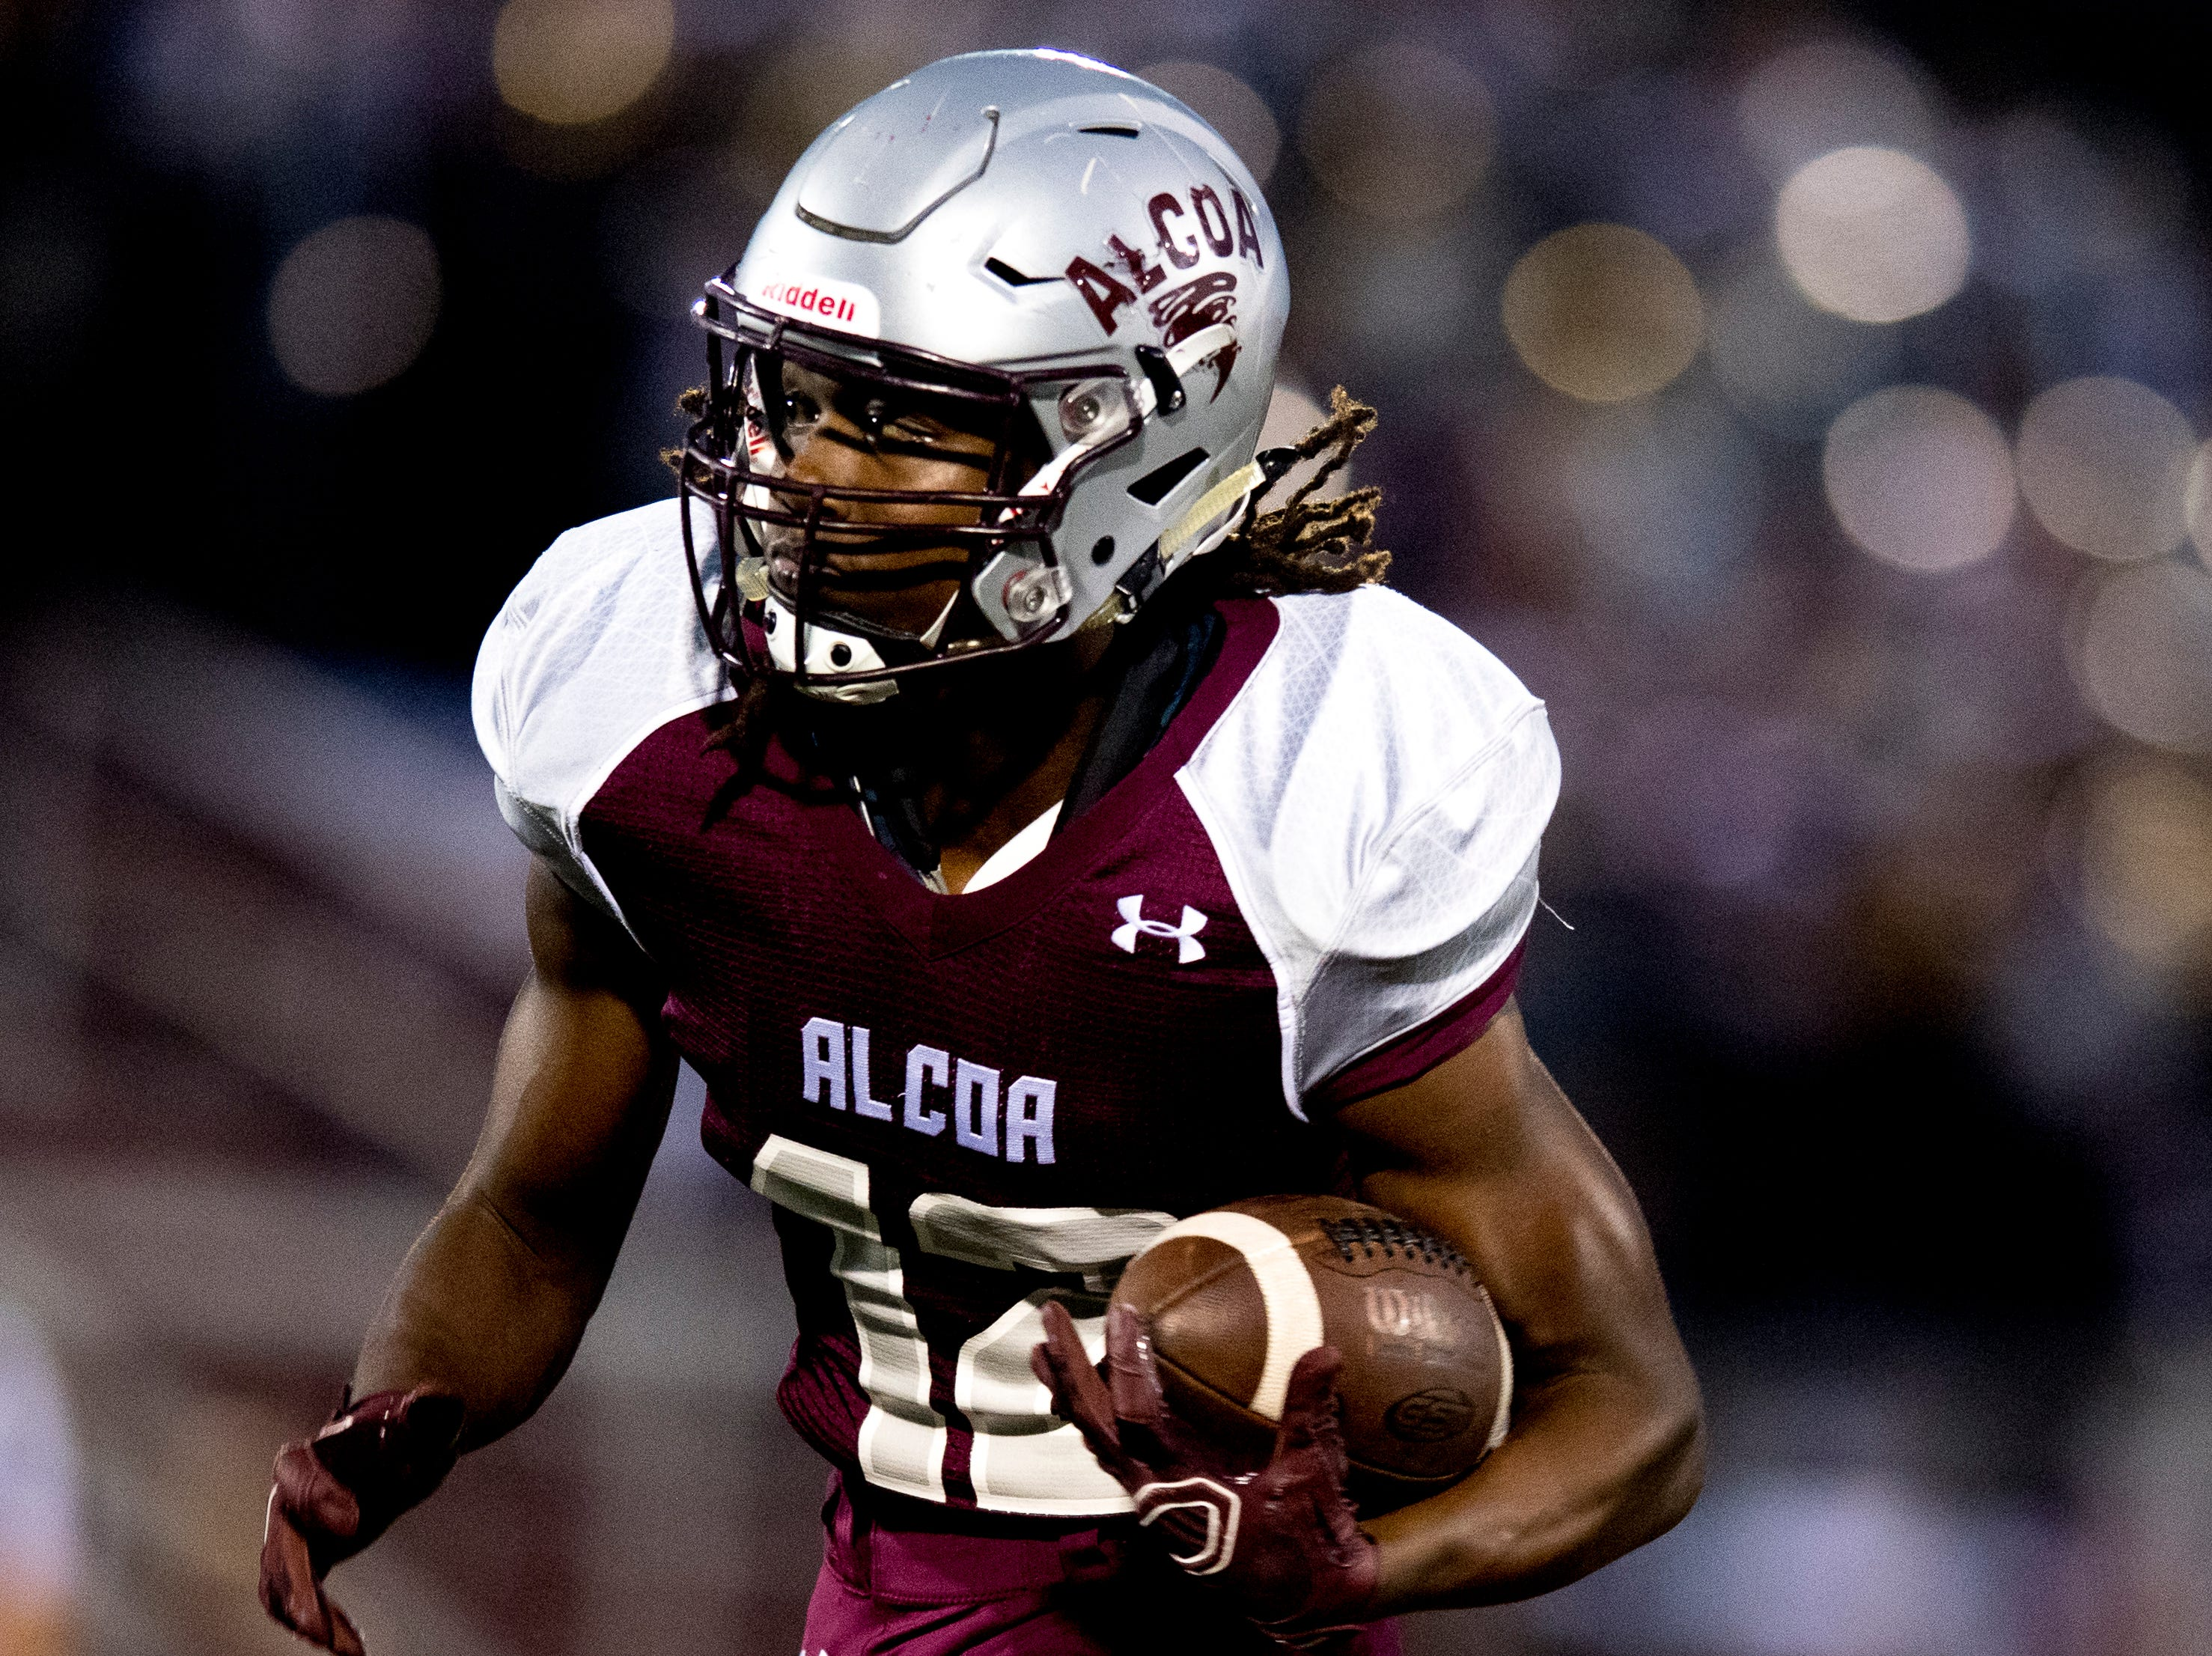 Alcoa's Isiah Cox (12) runs with the ball during a game between Alcoa and Dobyns-Bennett at Alcoa High School in Alcoa, Tennessee on Friday, September 21, 2018.